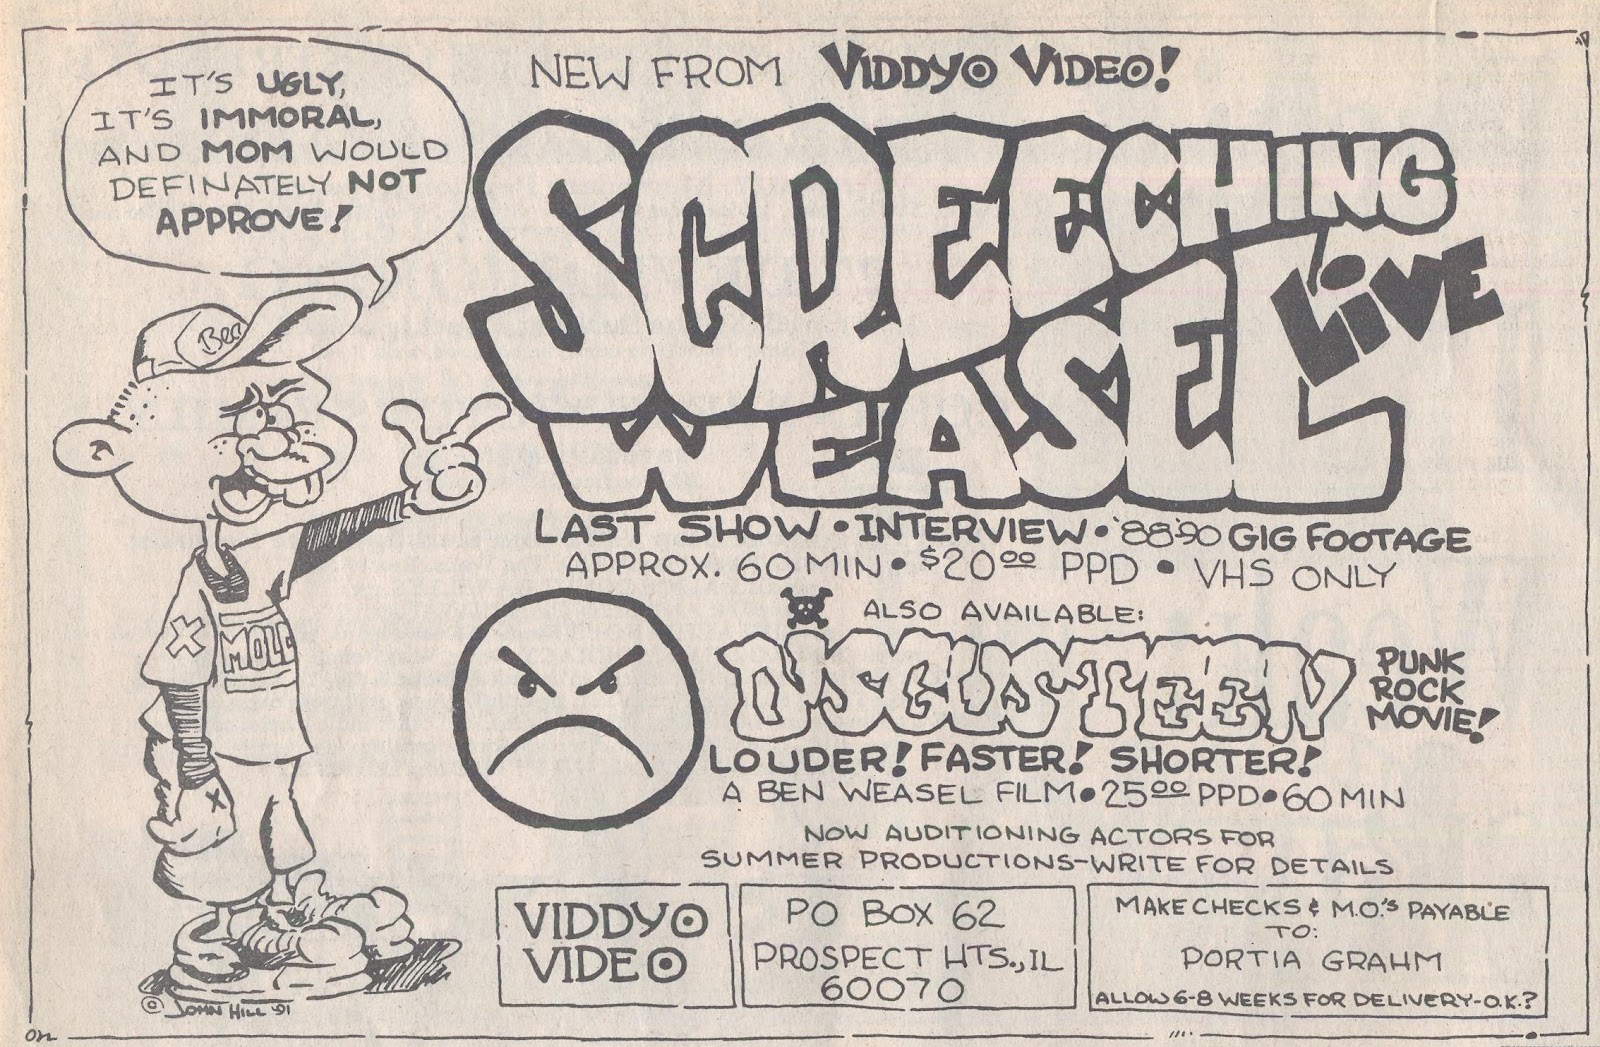 Screeching Weasel - Wikipedia